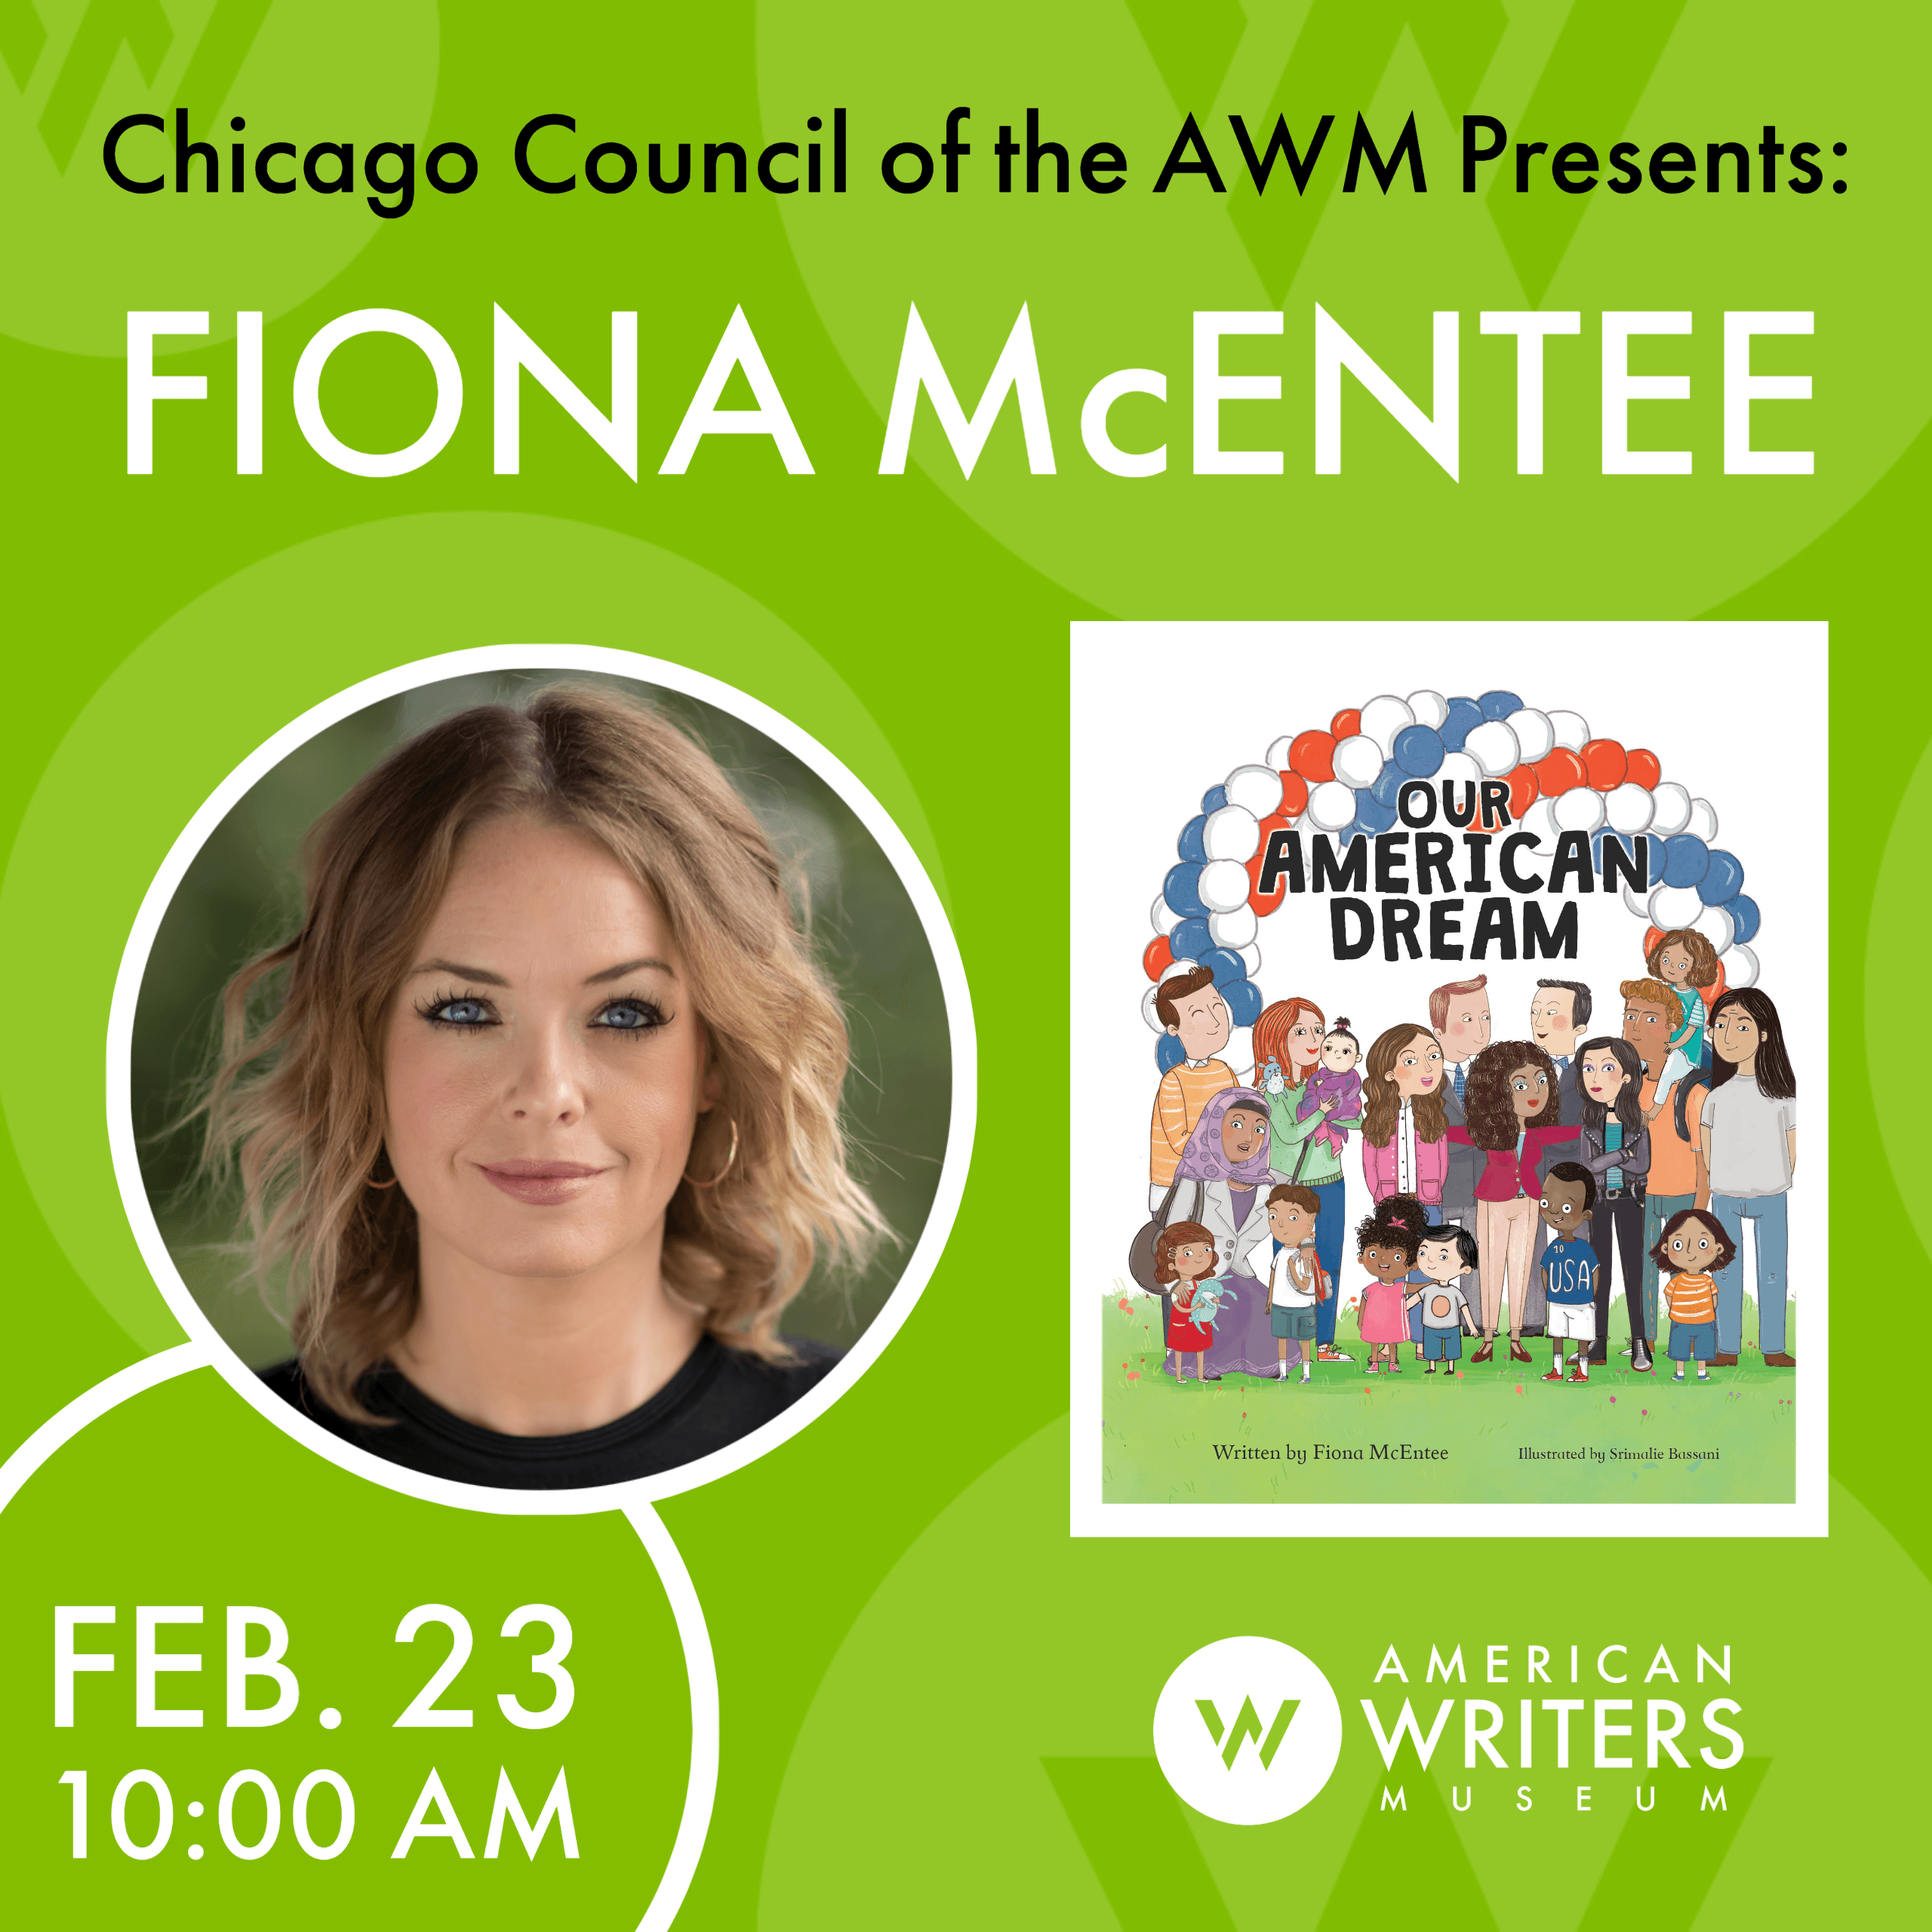 Fiona McEntee reads and discusses her new children's book Our American Dream at the American Writers Museum on February 23